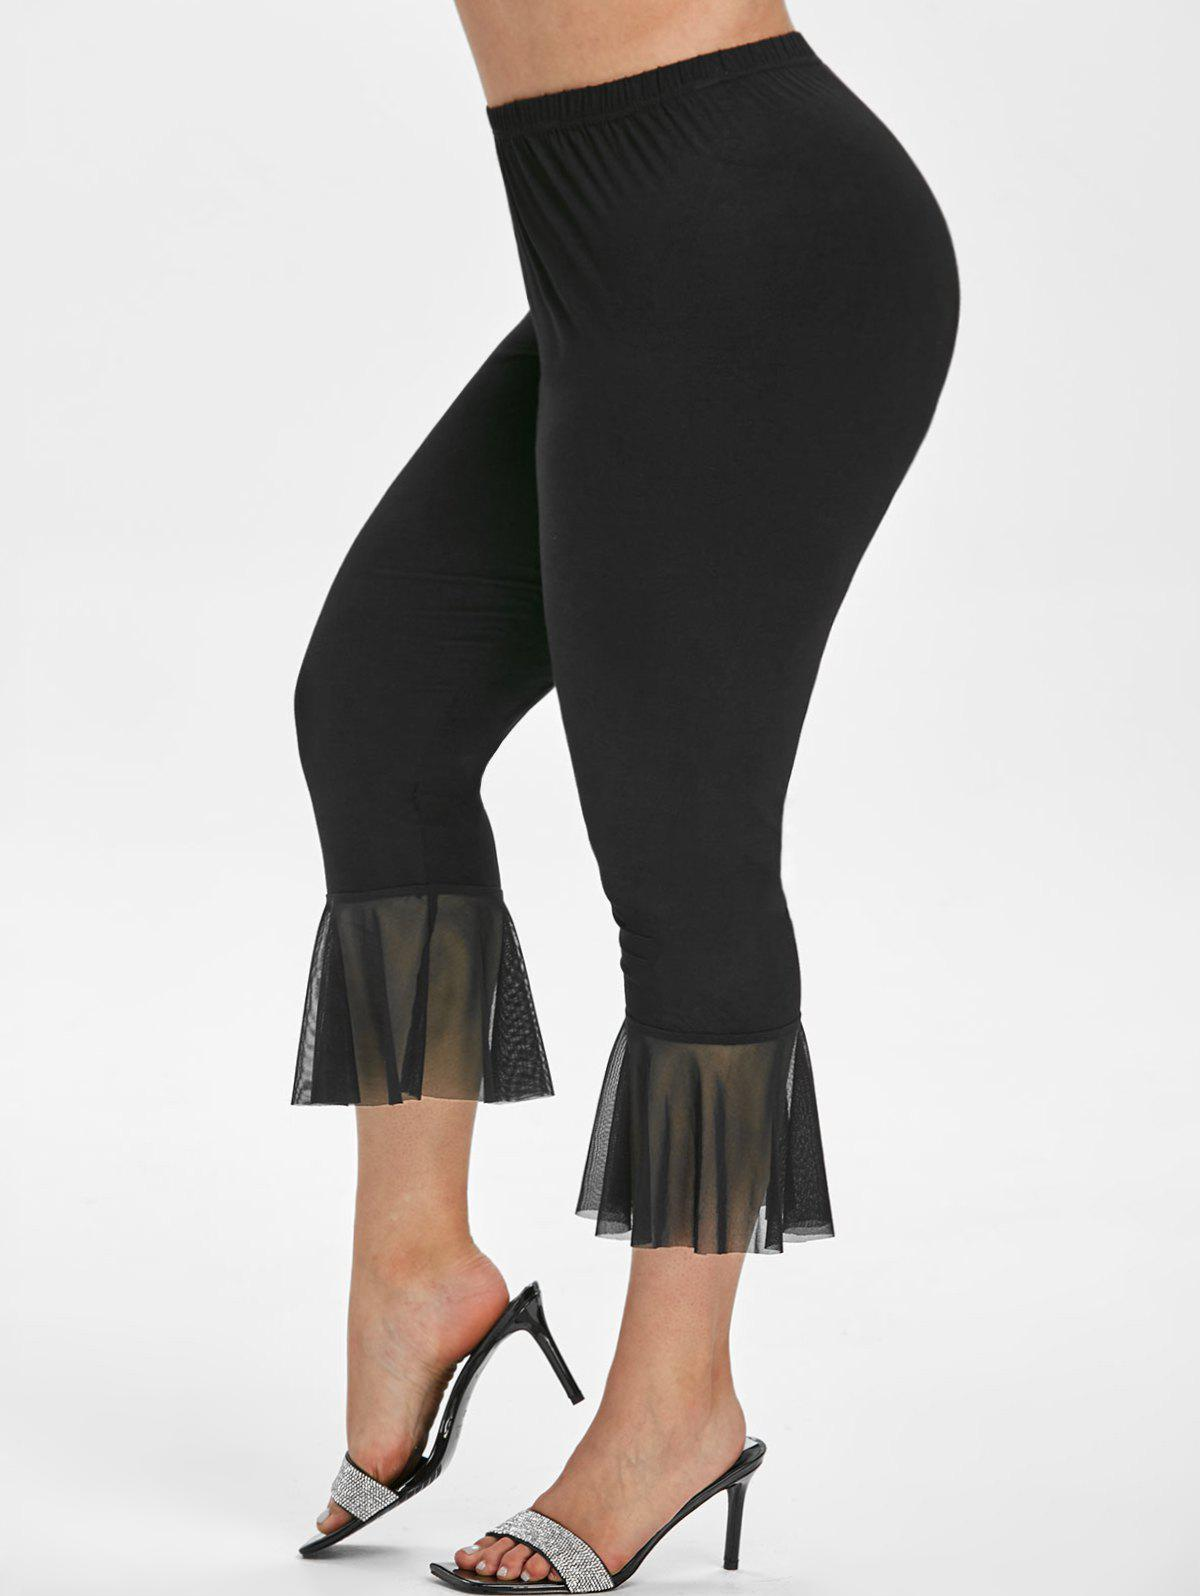 Fancy High Waisted Mesh Panel Plus Size Flare Pants